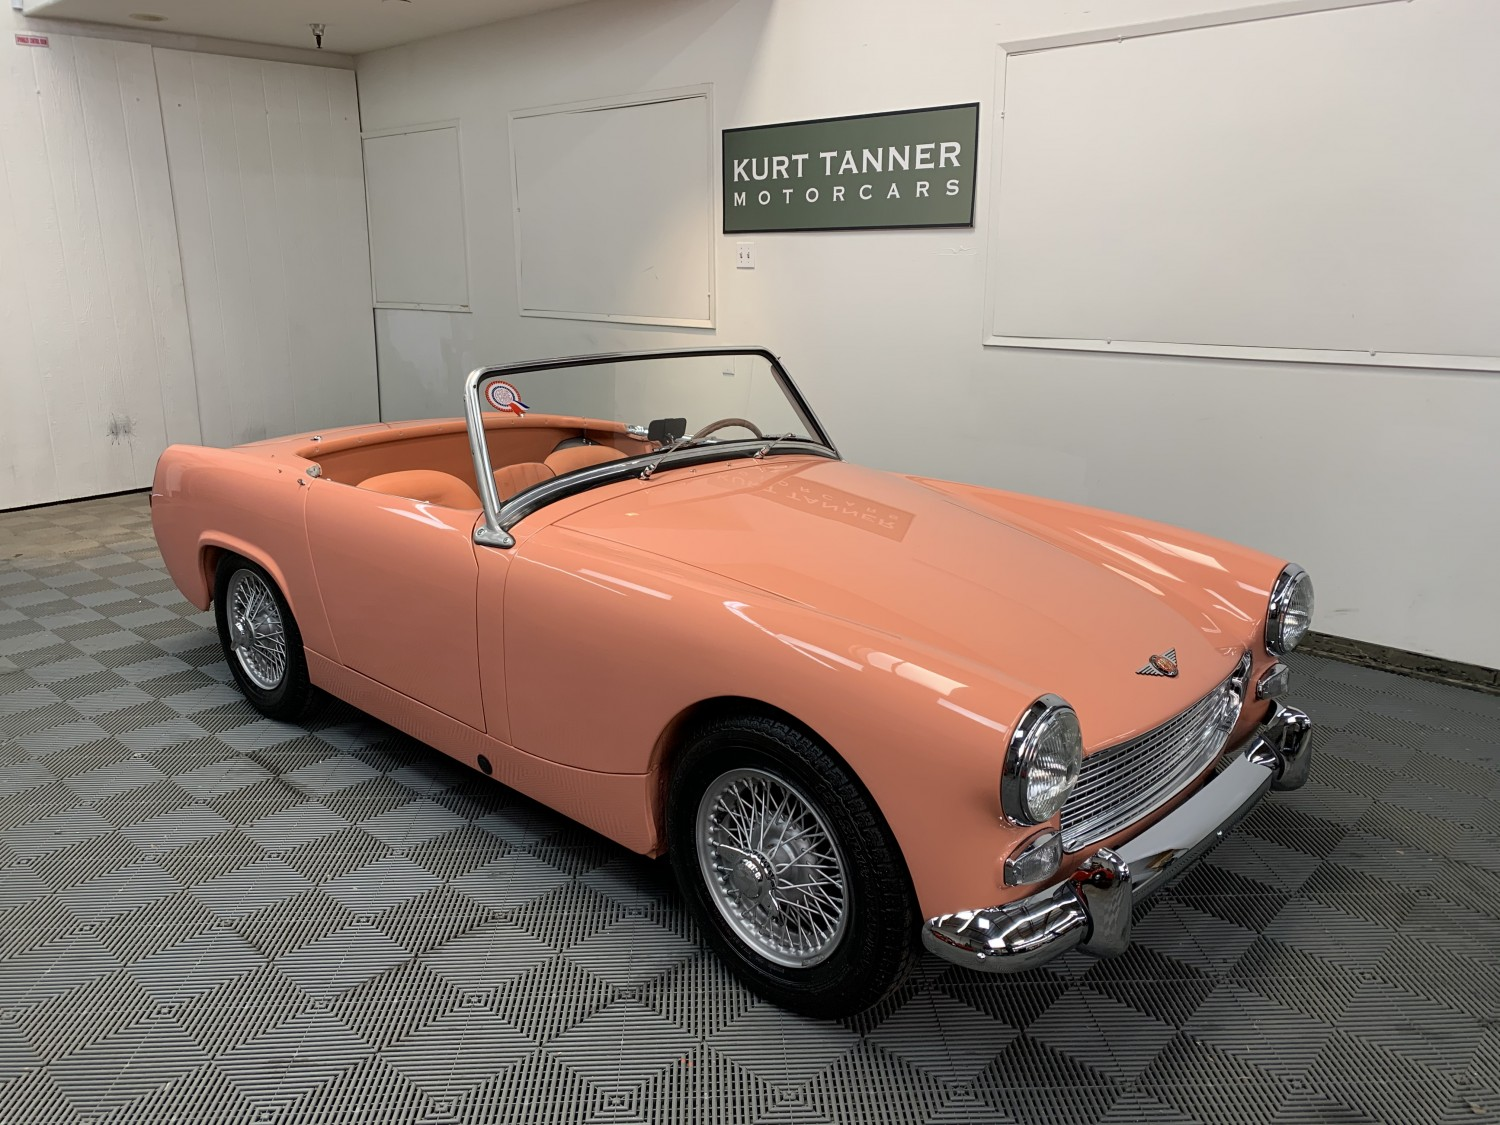 1963 AUSTIN HEALEY SPRITE MK2 ROADSTER. SALMON WITH MATCHING TRIM. GRAY CARPETS, TOP, TONNEAU COVER. 4-SPEED. WIRE WHEELS. HOT 1275cc ENGINE. EXQUISITE GROUND-UP RESTORATION. SUPERB LITTLE CAR.